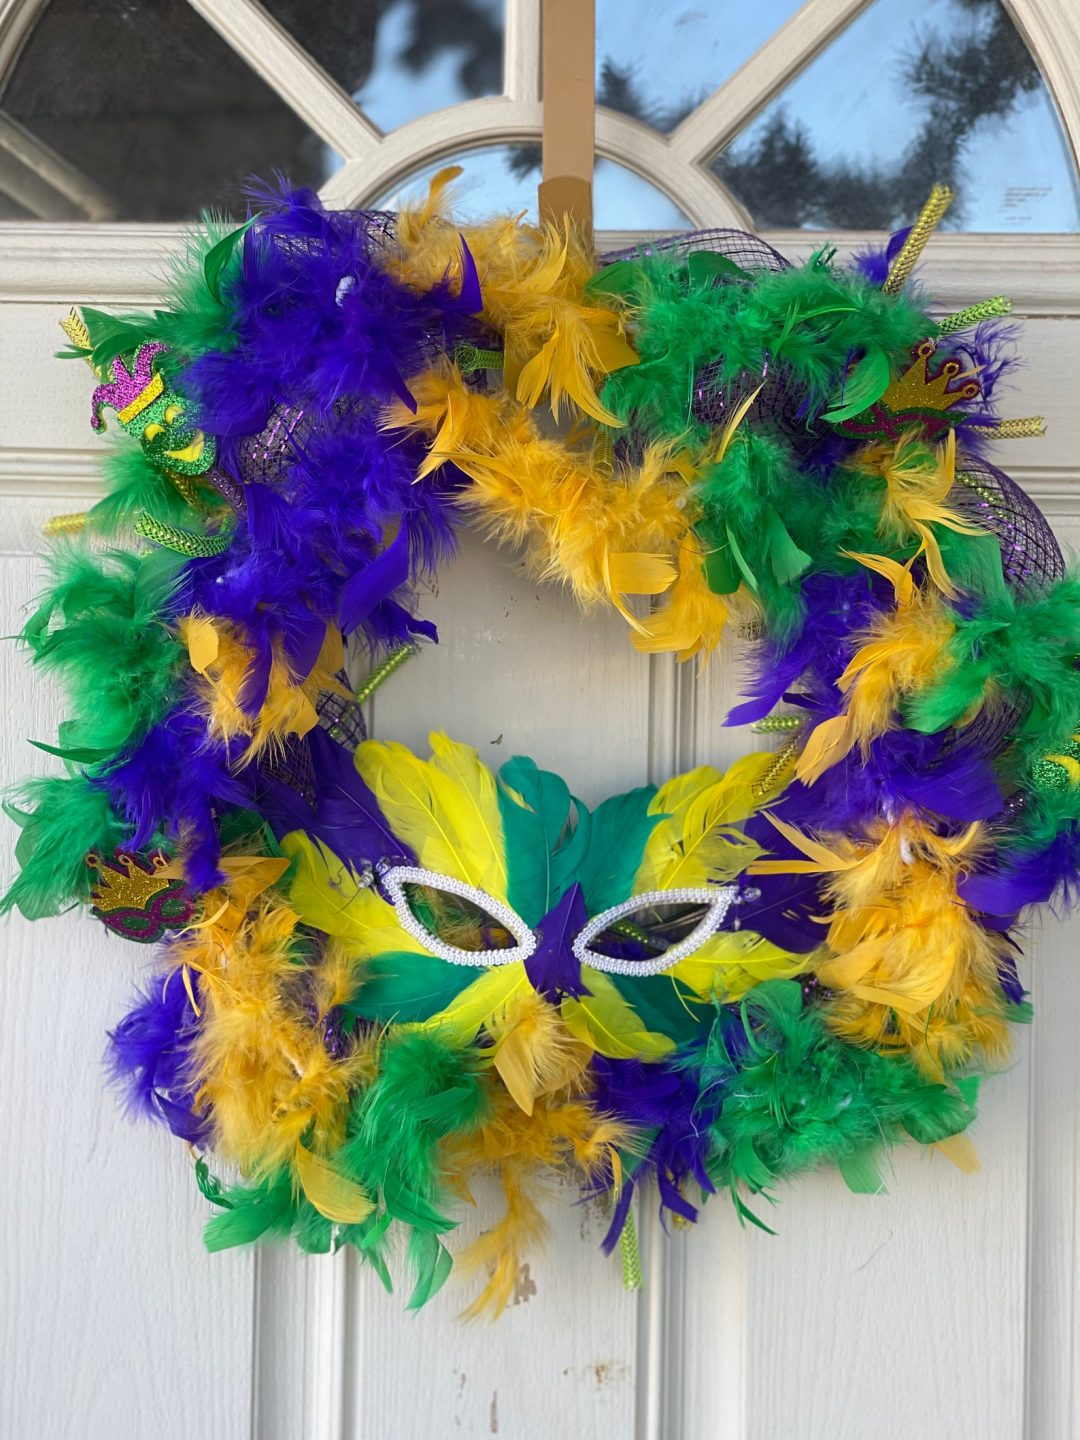 Mardi Gras wreaths with feathers